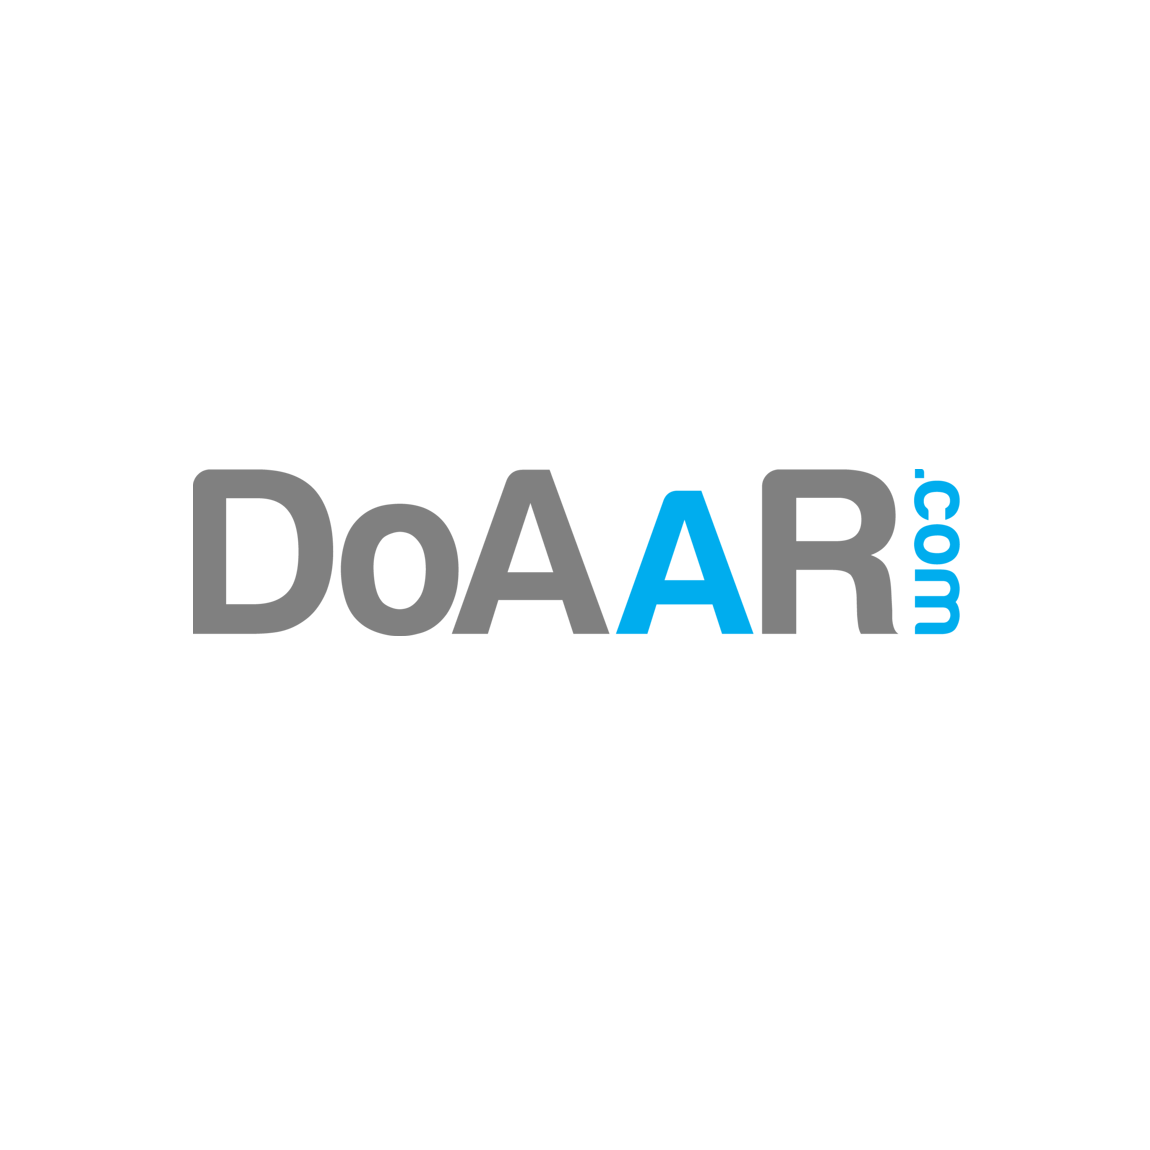 DOAAR: Accounting  and  Financial Services image 0